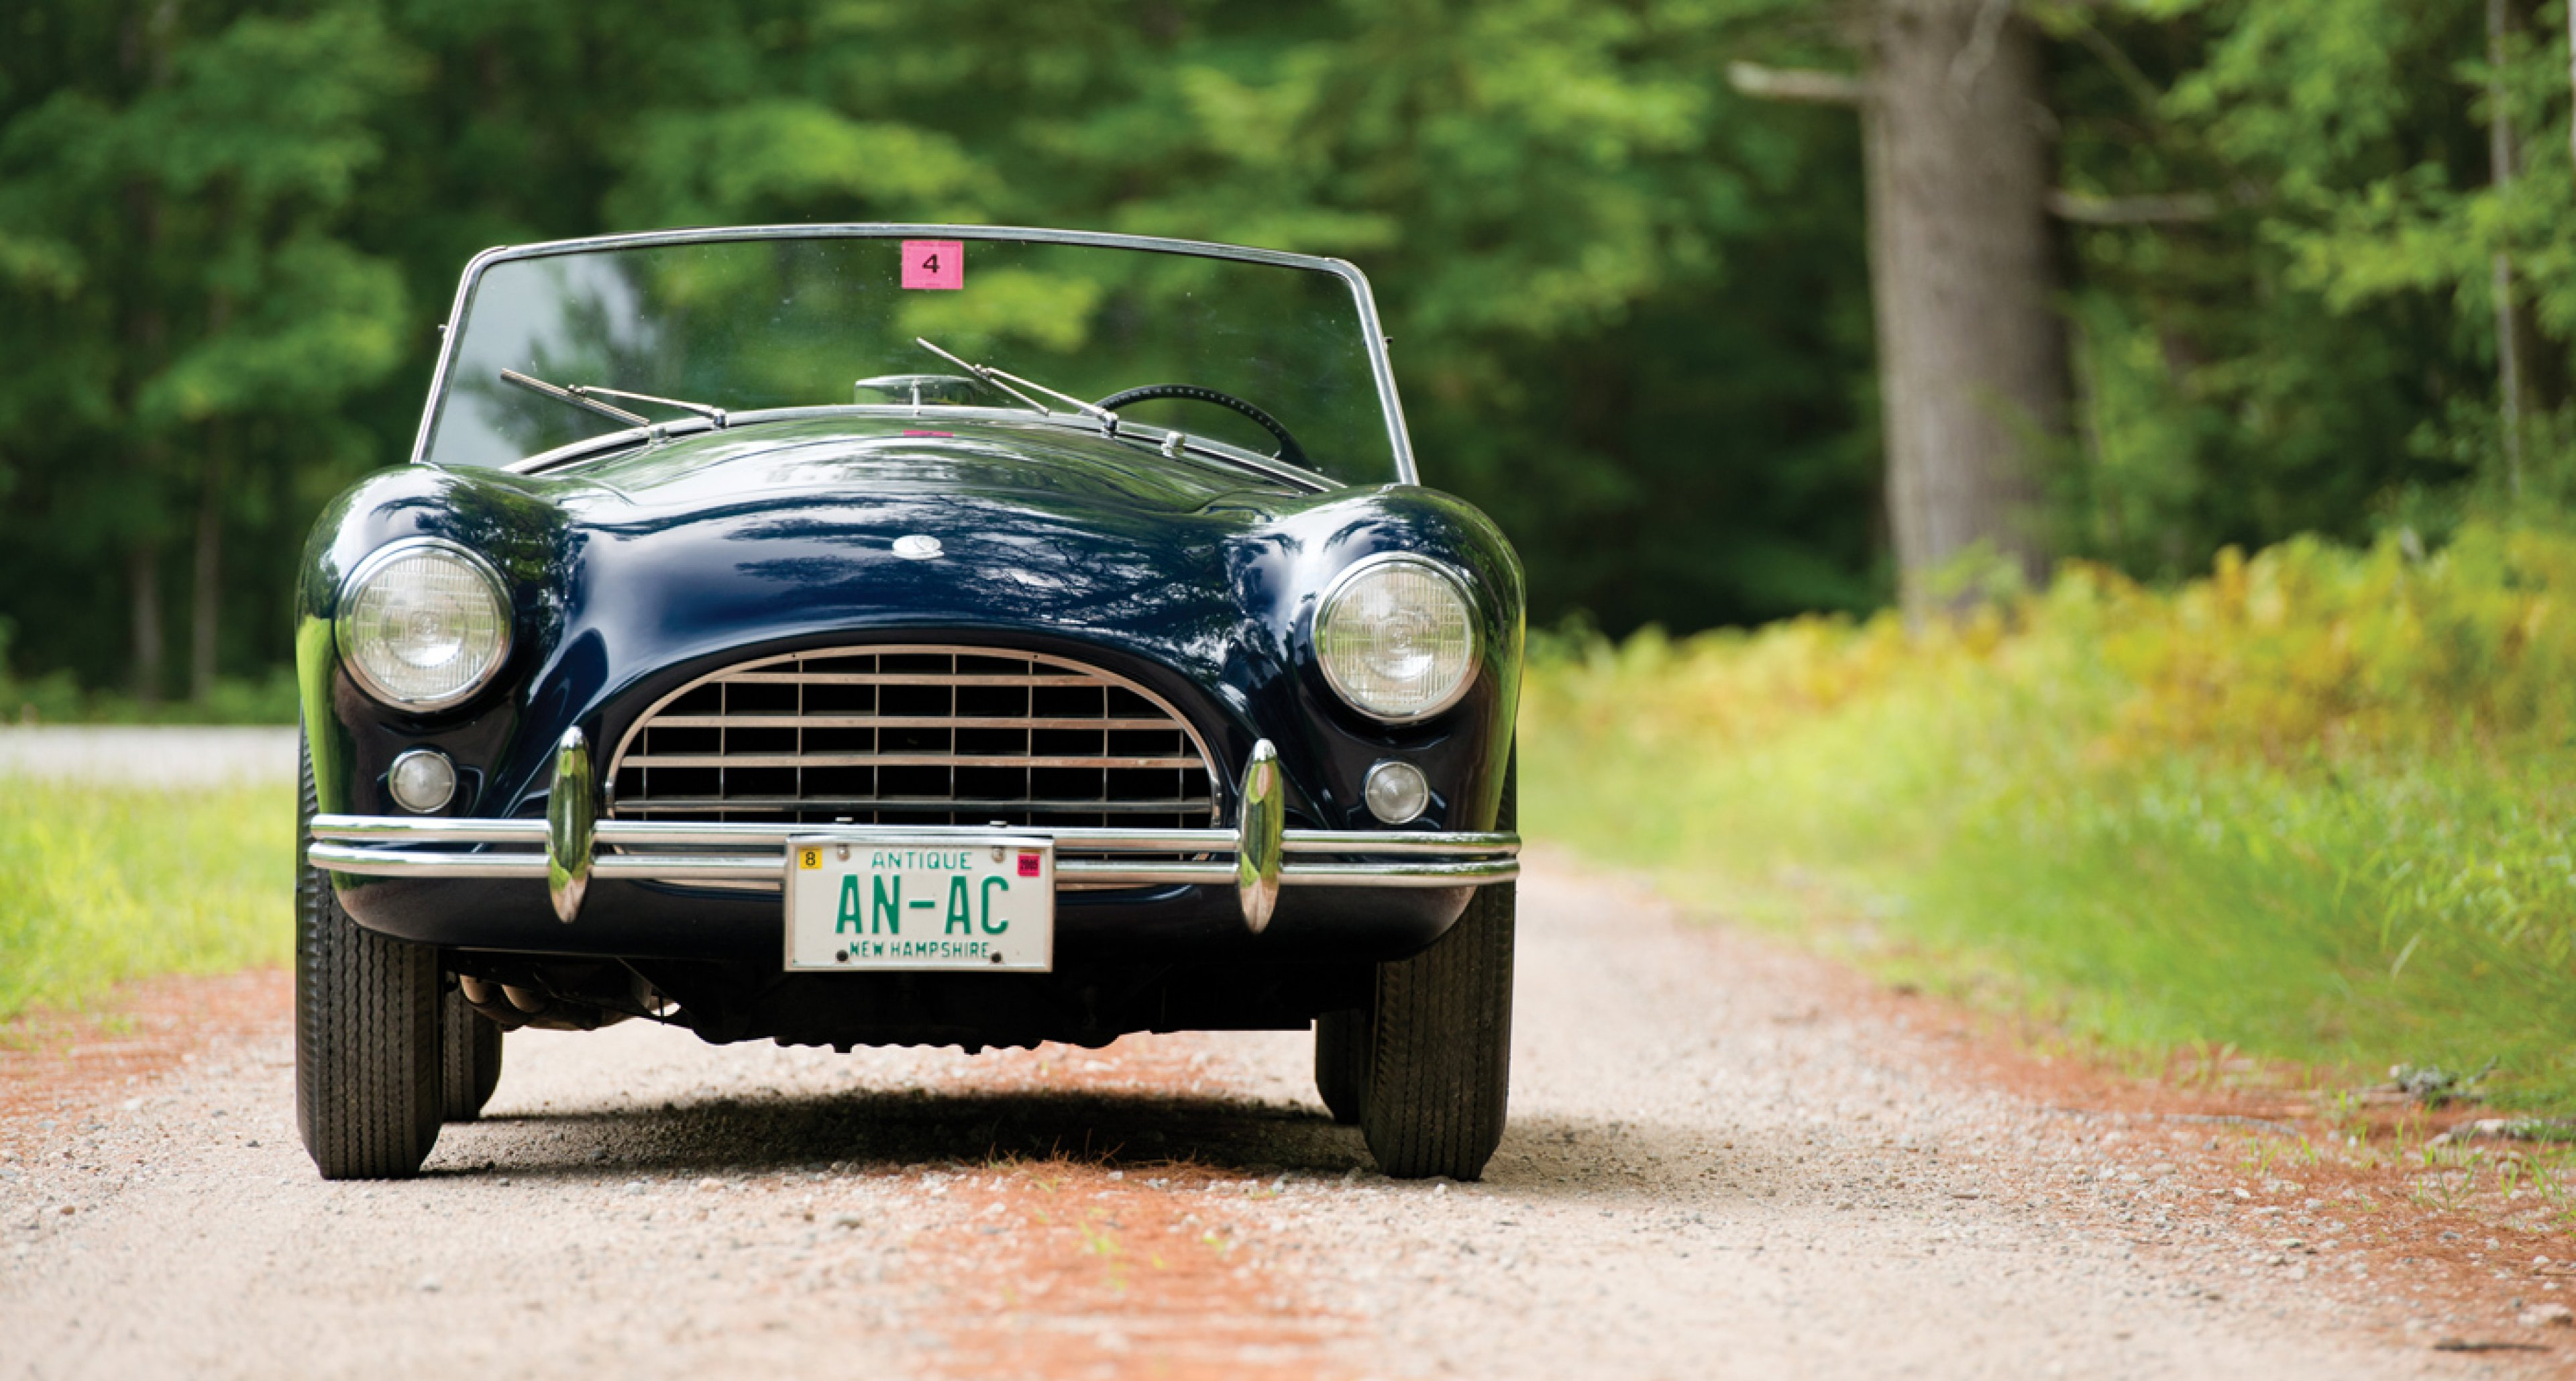 Lot 140:  1958 AC Ace-Bristol ($225,000 - $300,000) to be offered at RM Auctions Hershey 9 - 10 October 2014